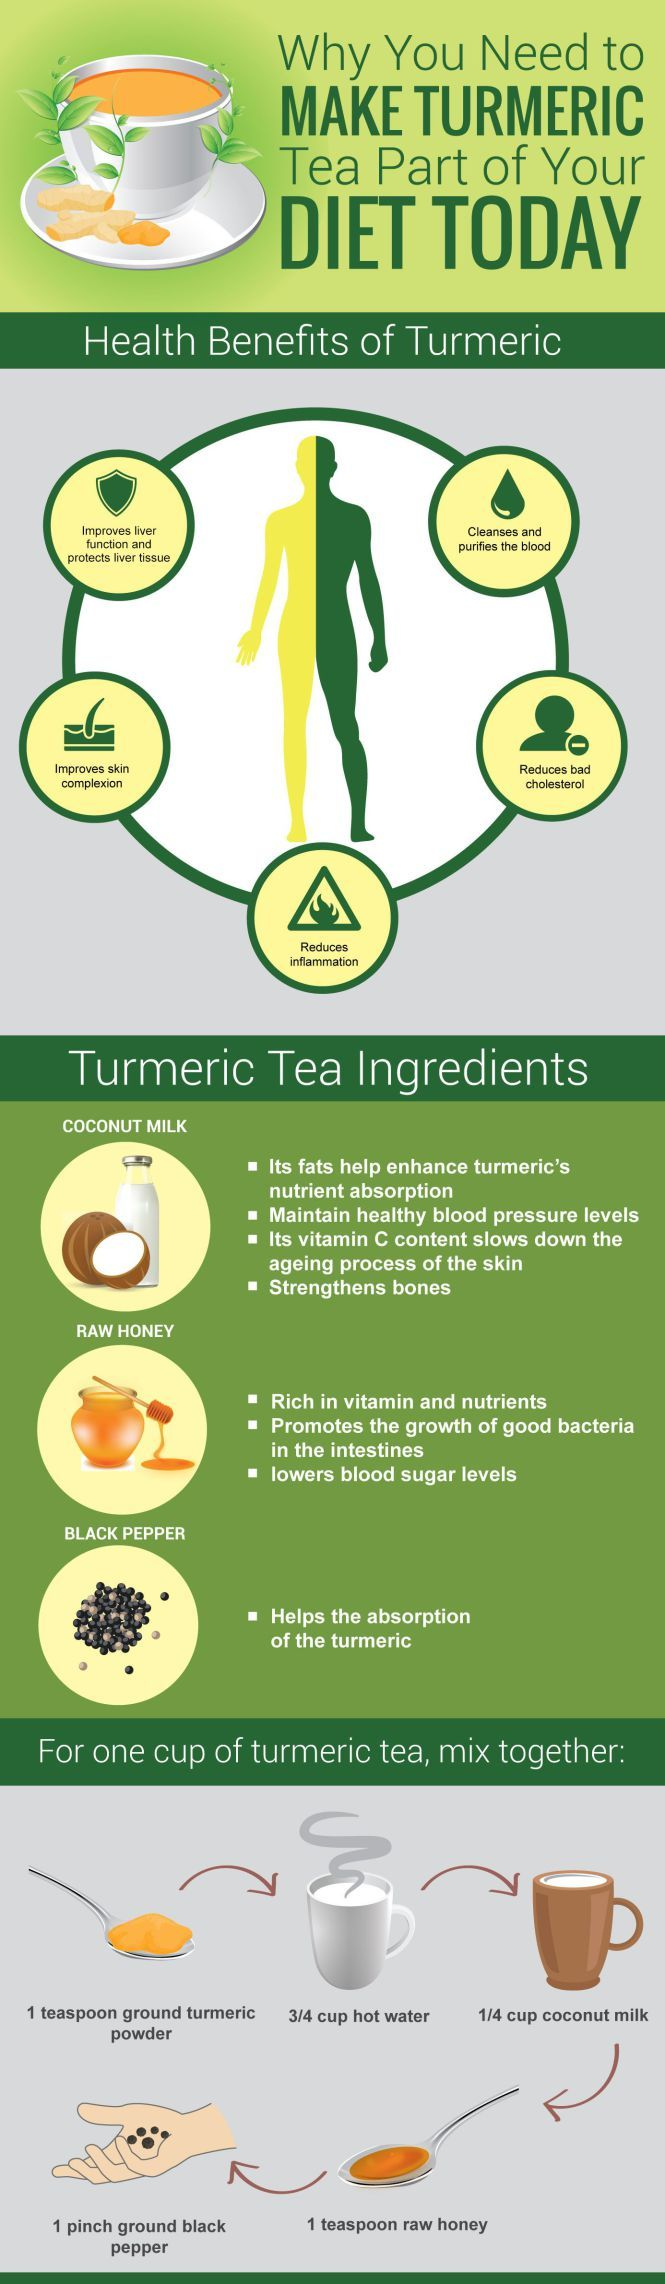 Why you need to make turmeric tea part of your diet today